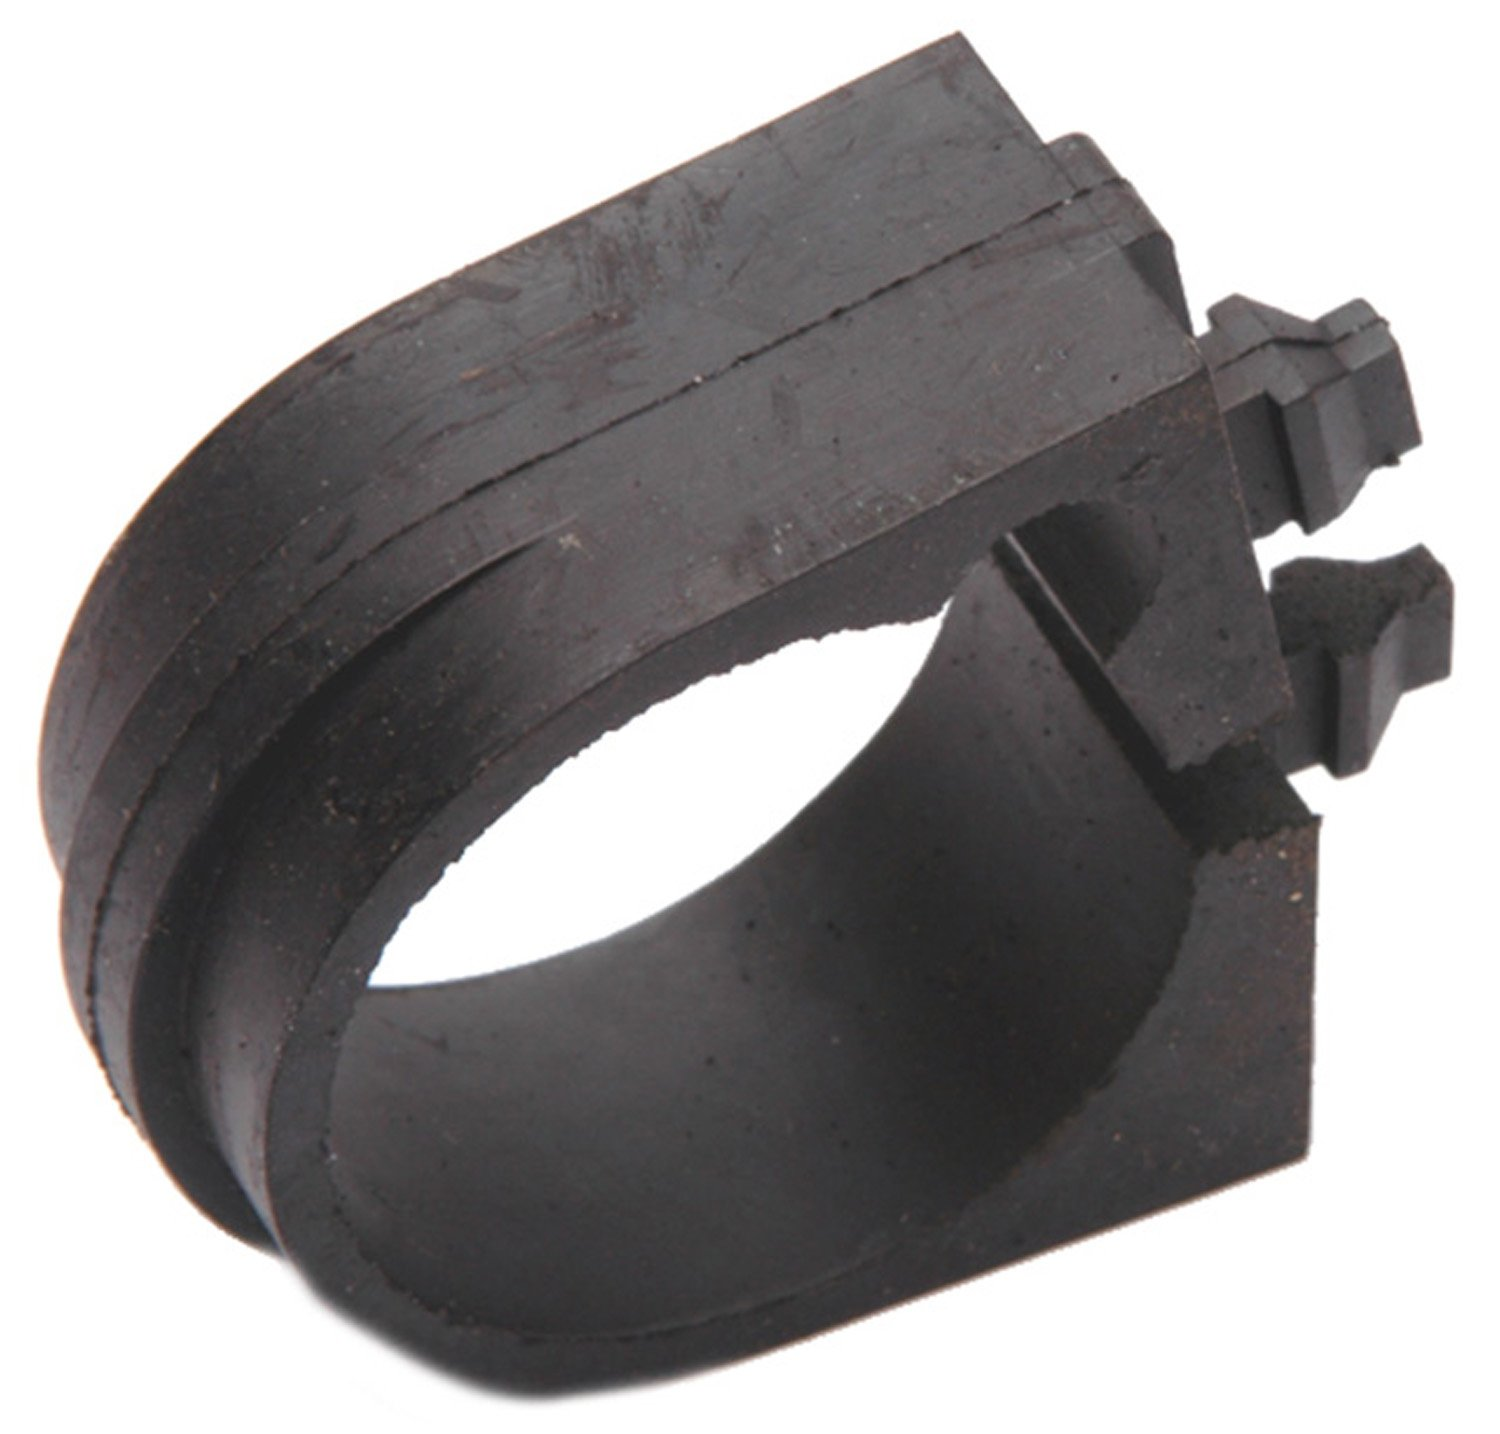 ACDelco 45G24025 Professional Rack and Pinion Mount Bushing